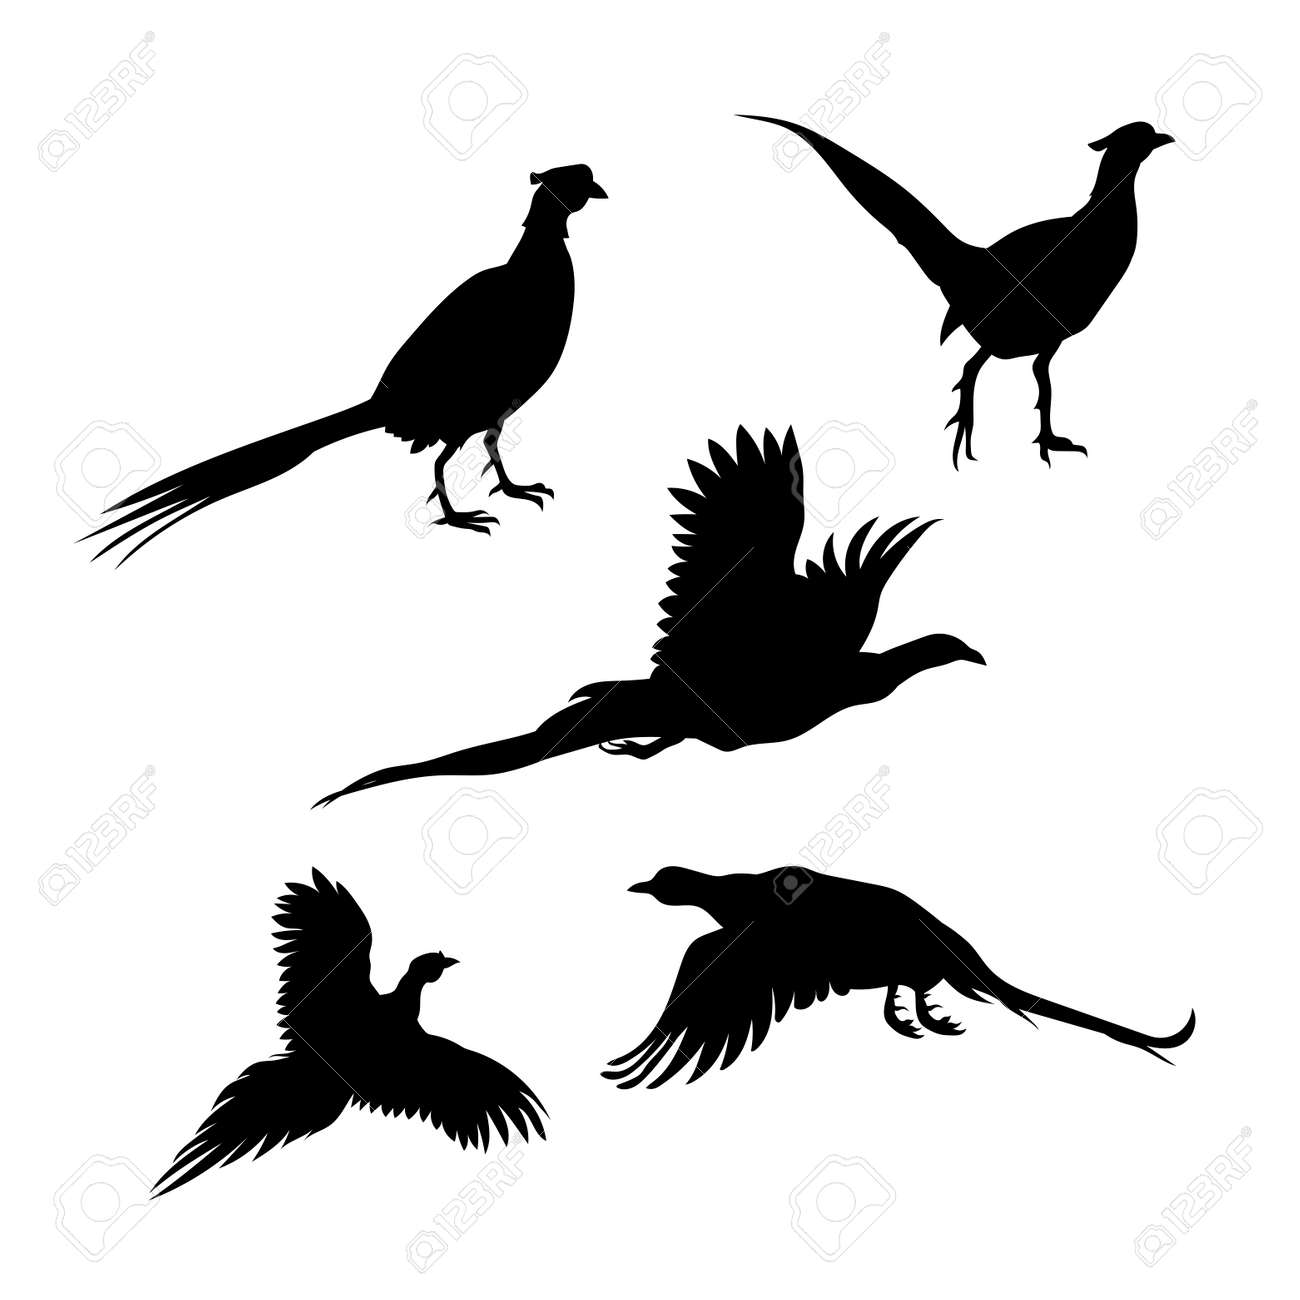 1 653 pheasant stock vector illustration and royalty free pheasant rh 123rf com pheasant clip art free peasant clipart